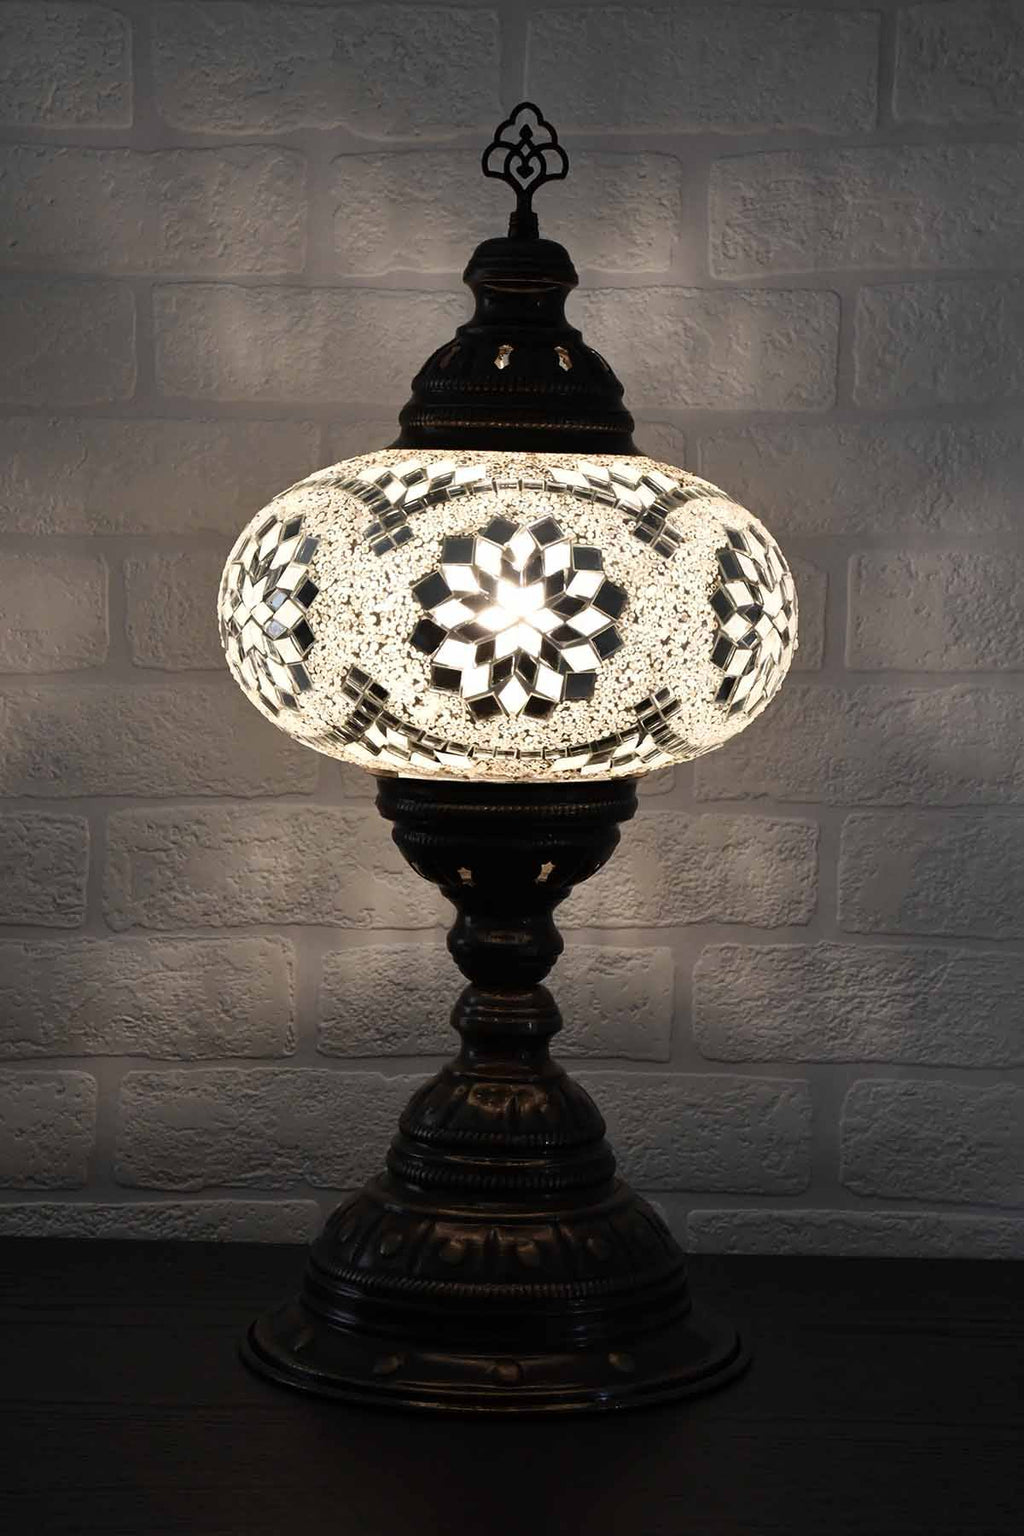 Turkish Table Lamp Large White Star Beads Lighting Sydney Grand Bazaar